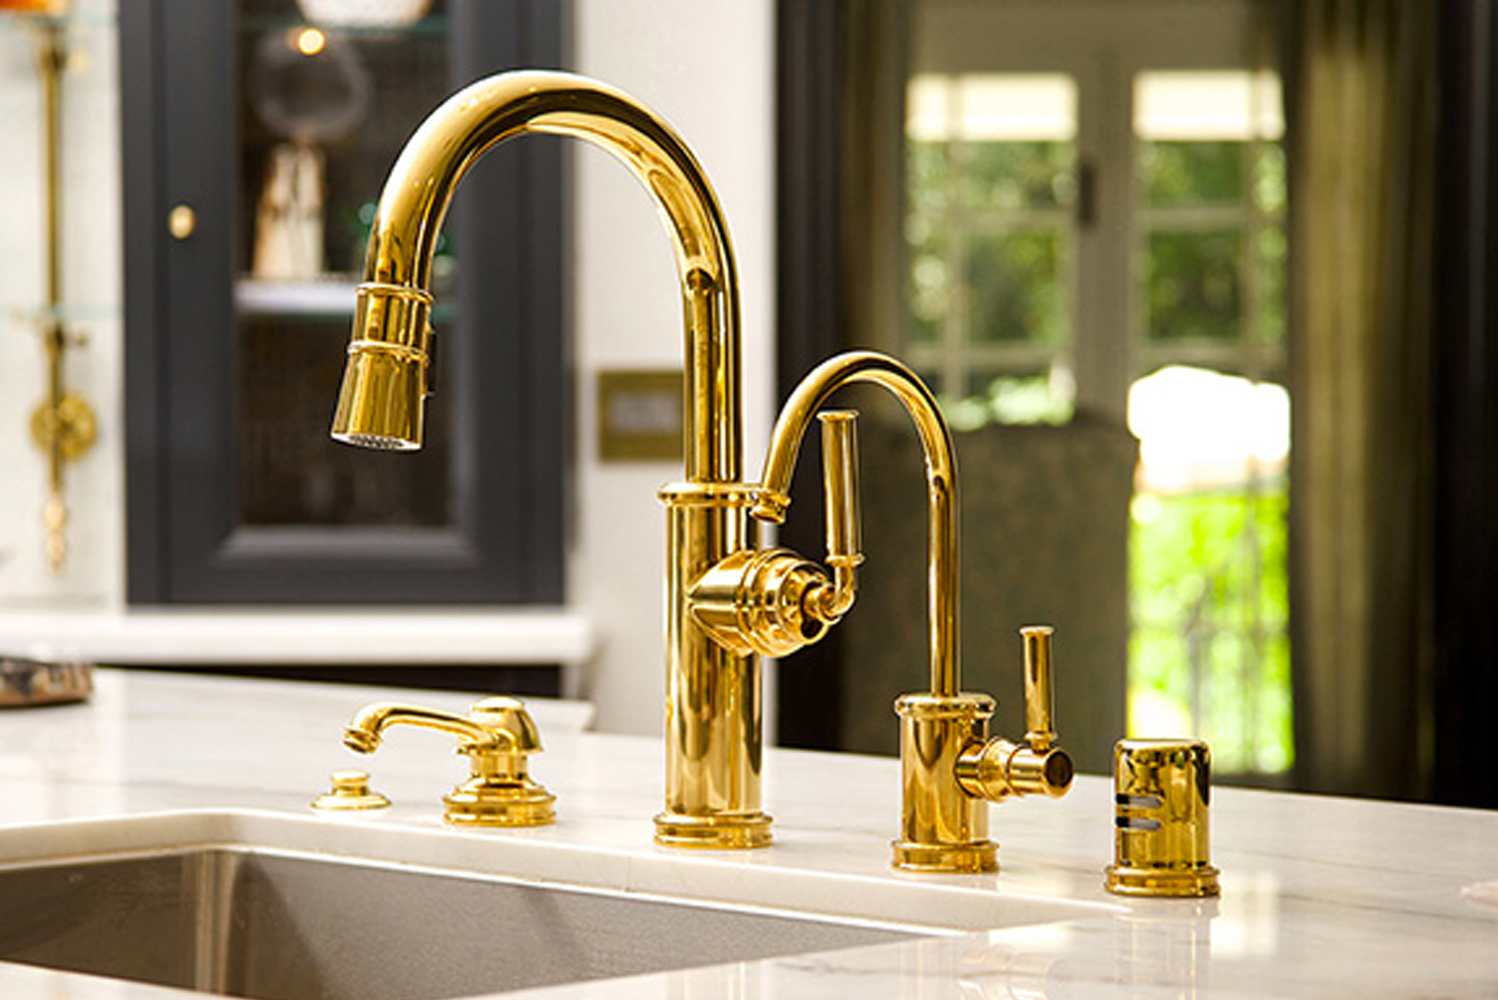 California-made, the Taft kitchen collection is constructed of solid brass.